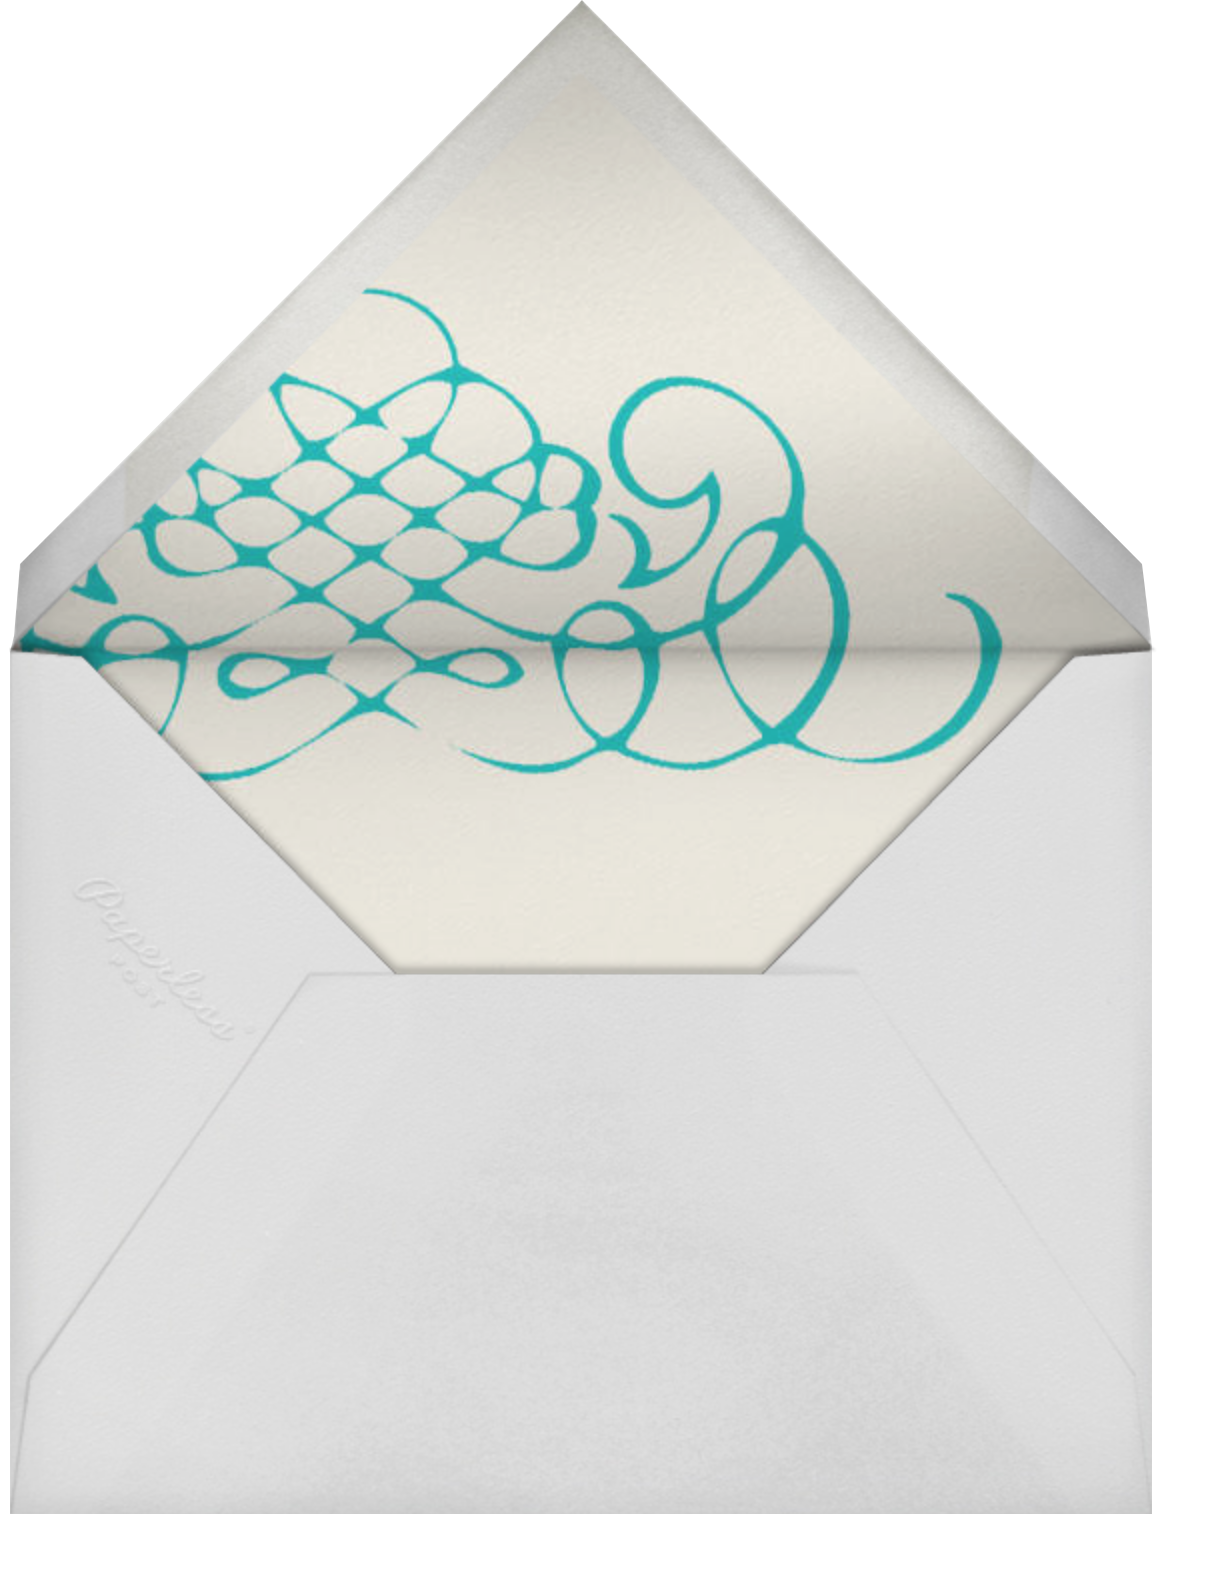 Antique Press- Cream with Teal (Horizontal) - Paperless Post - General - envelope back